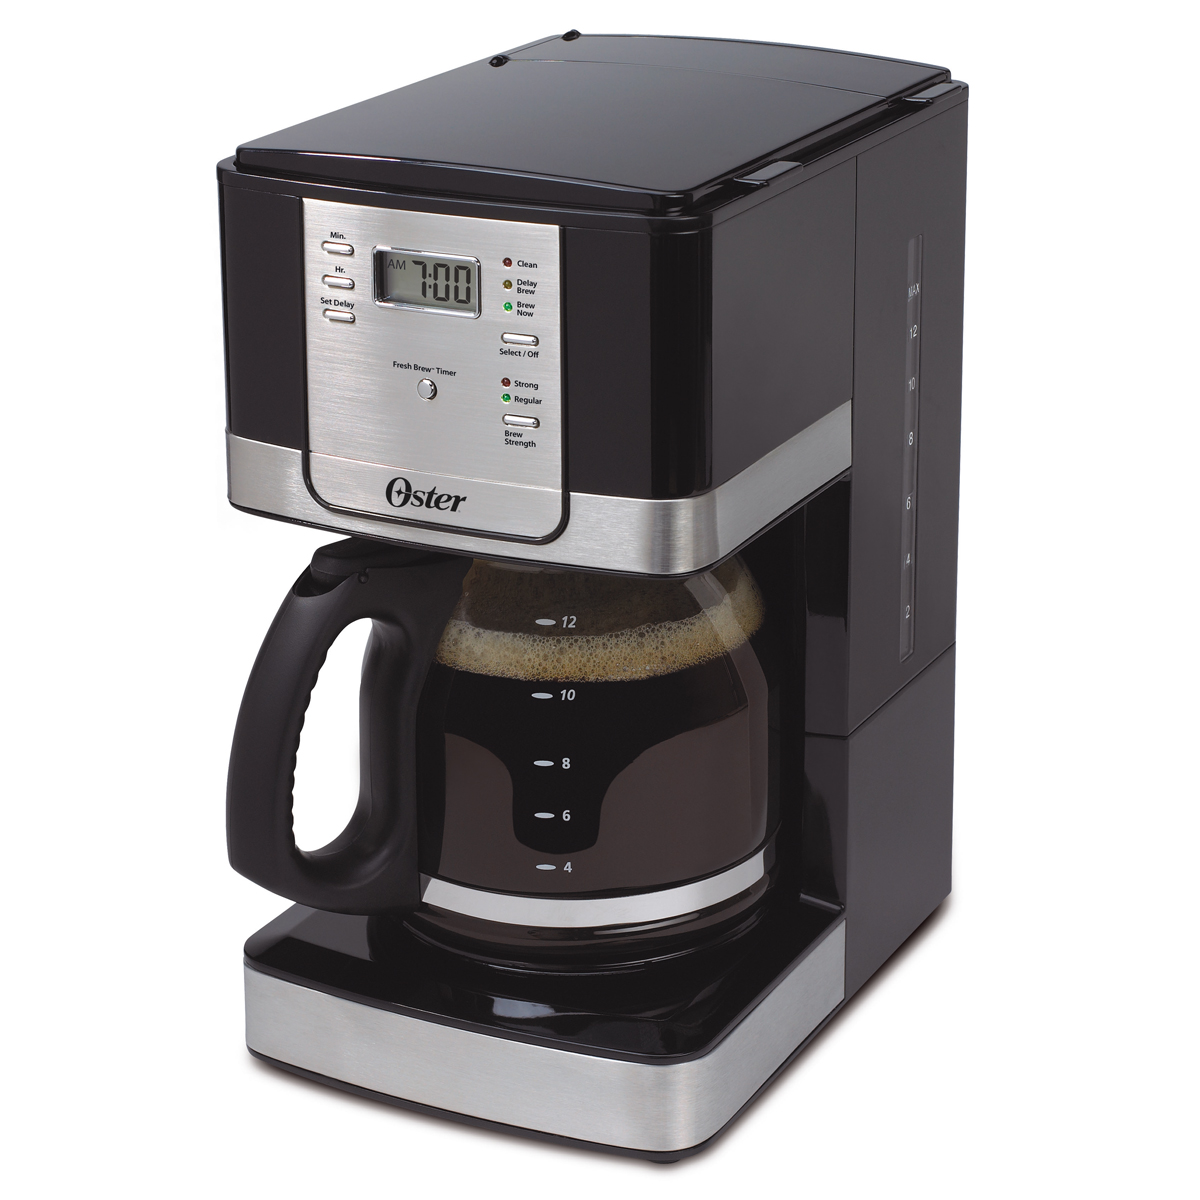 oster 12 cup programmable coffee maker 3314 33 parts. Black Bedroom Furniture Sets. Home Design Ideas